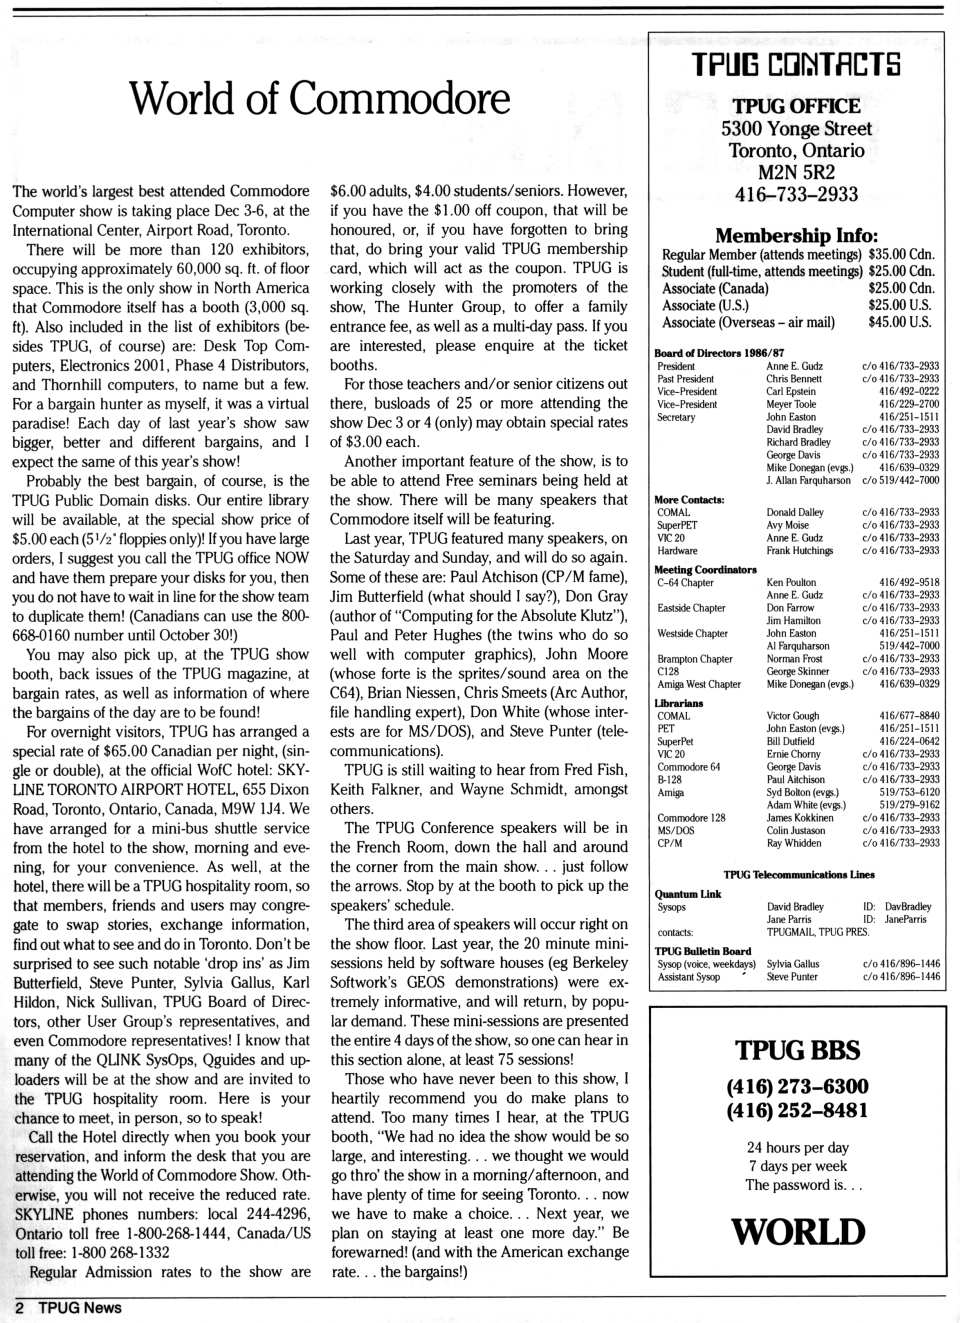 [TPUG News, Volume 2, Number 1, page 2  World of Commodore]